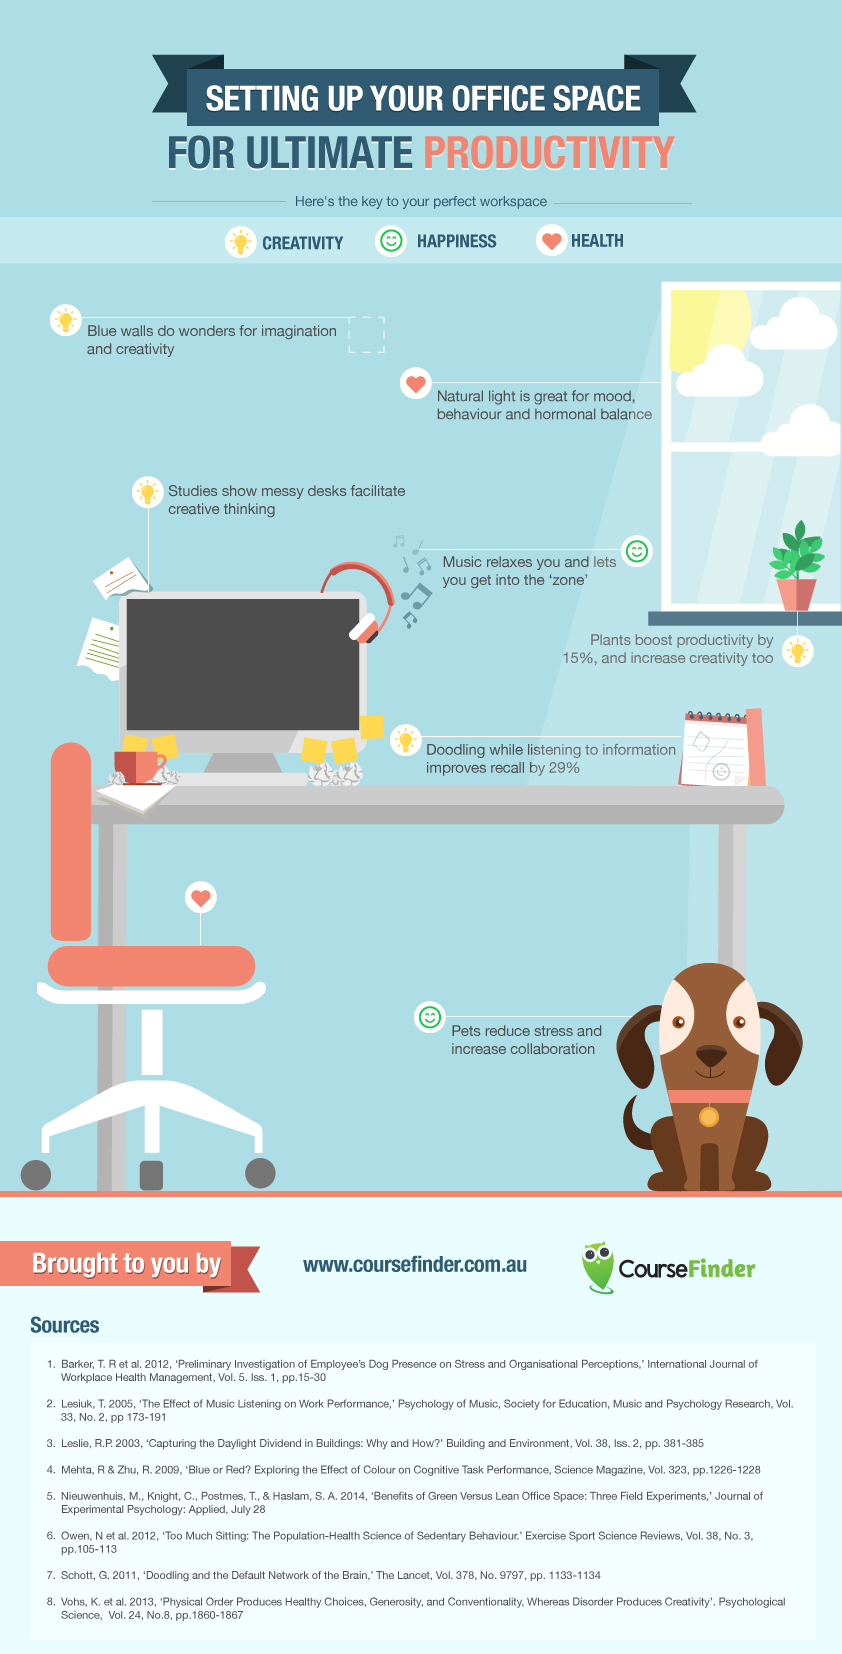 How to setup your workspace for maximum productivity